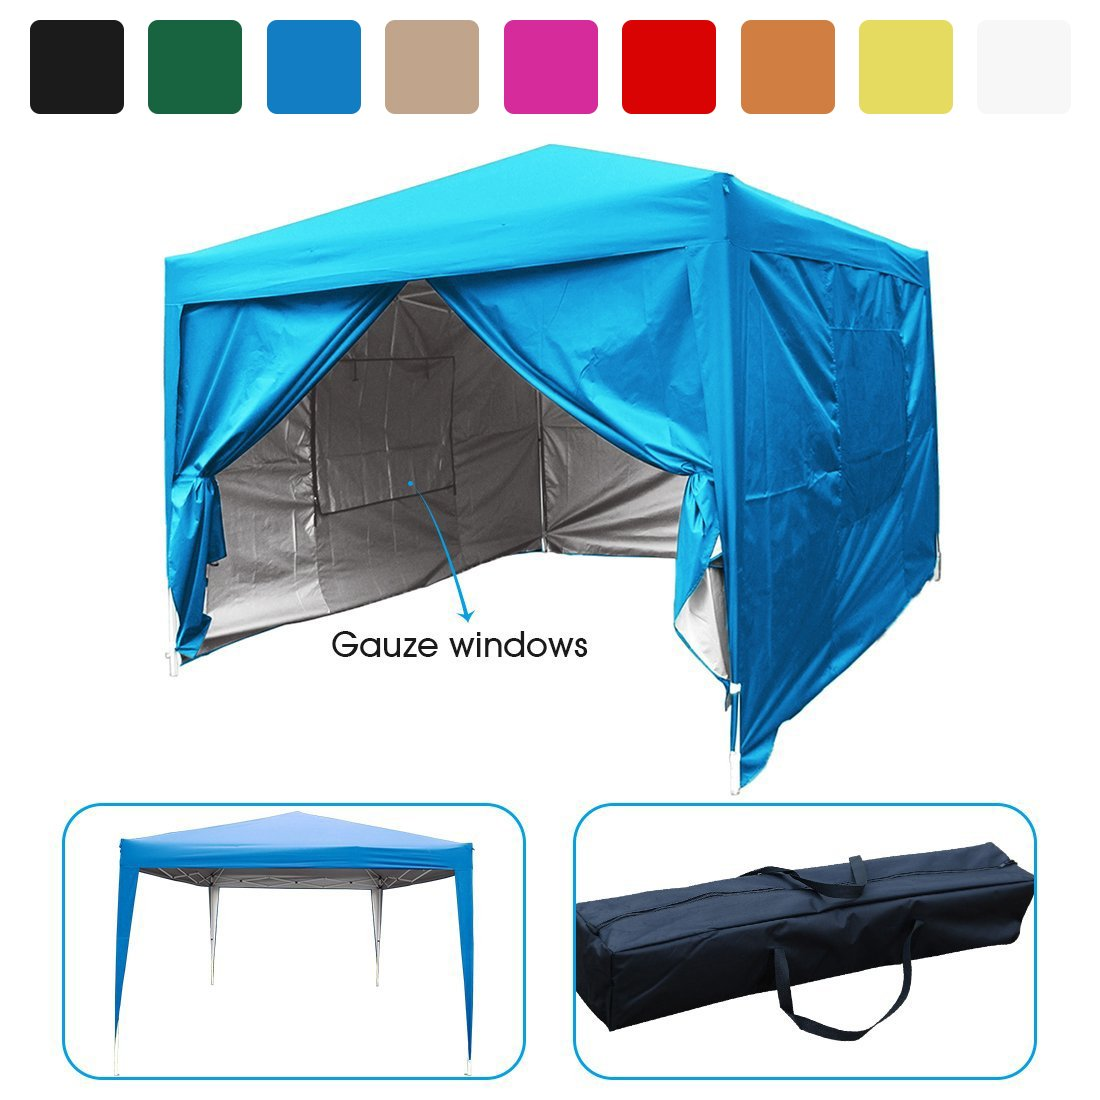 Quictent privacy 10x10 Mesh Curtain EZ Pop Up Party Tent Canopy Gazebo 100% Waterproof-7 Colors (Light Blue) by Quictent